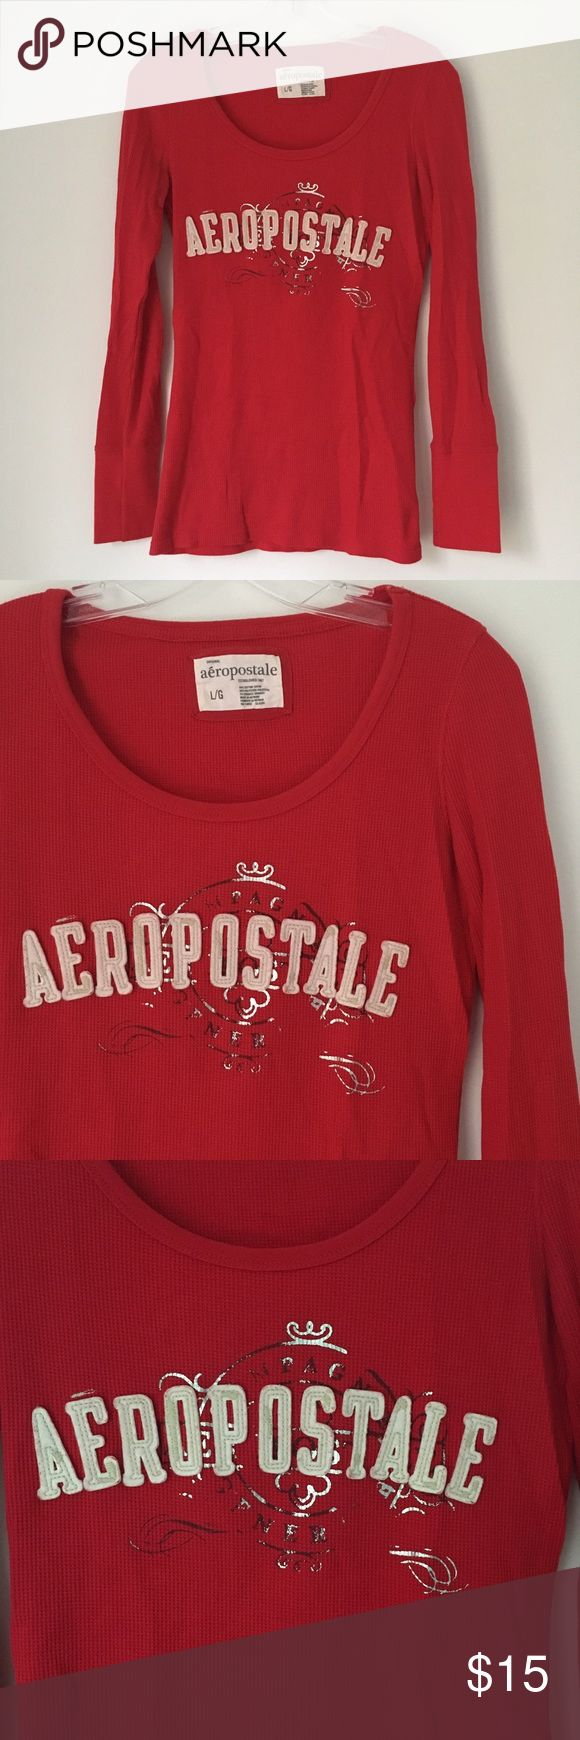 AEROPOSTALE RED WAFFLE KNIT THERMAL TEE SHIRT TOP! ‼️ DESCRIPTION COMING SOON ‼️ SPECIFIC DETAILS ALSO COMING SOON ‼️ (But feel free and ask questions if interested.) Aeropostale Tops Tees - Long Sleeve